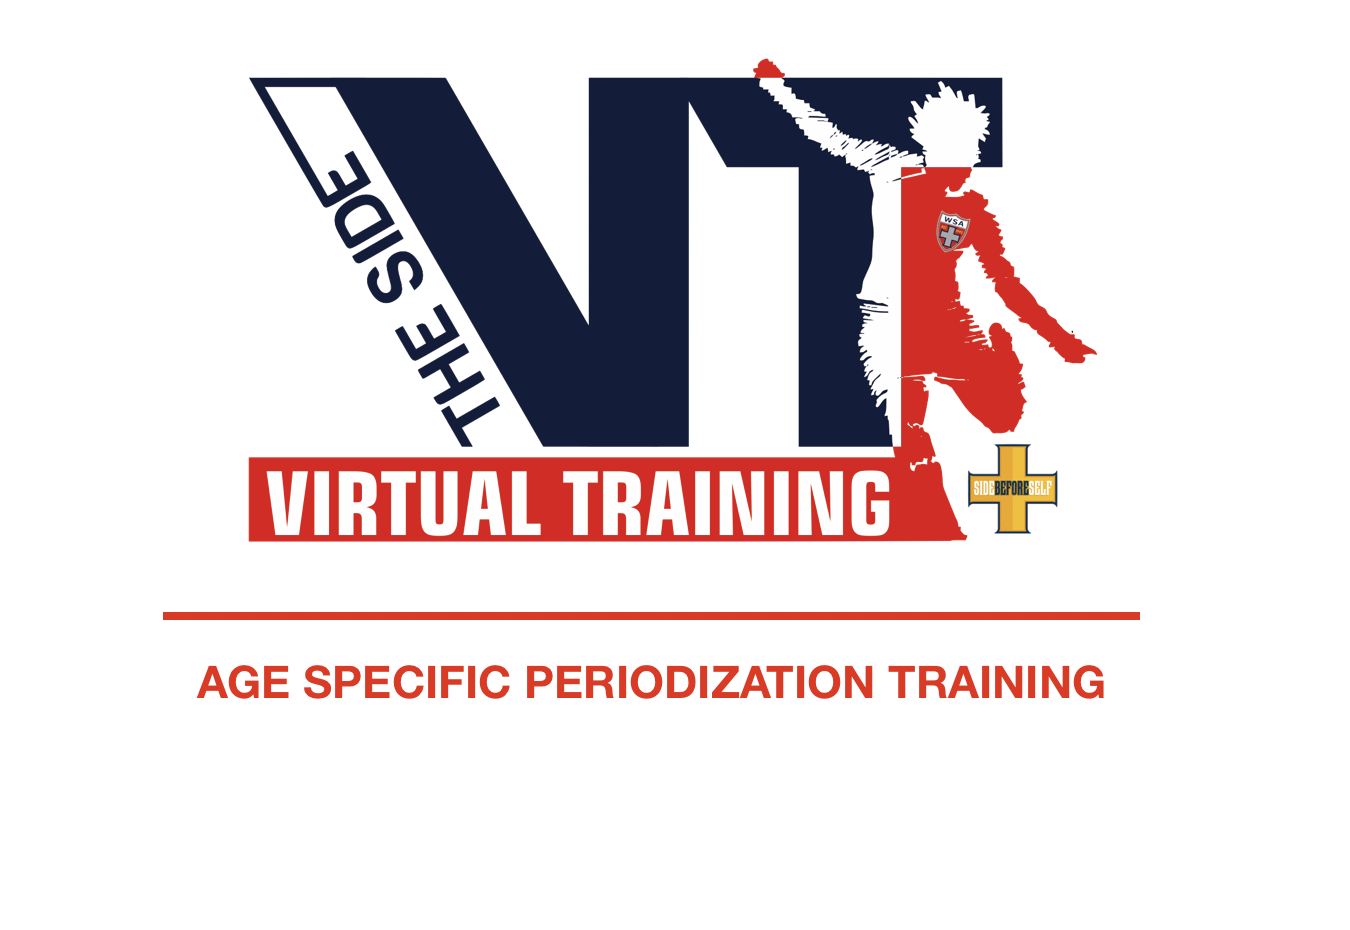 VIRTUAL TRAINING AGE SPECIFIC PROGRAM